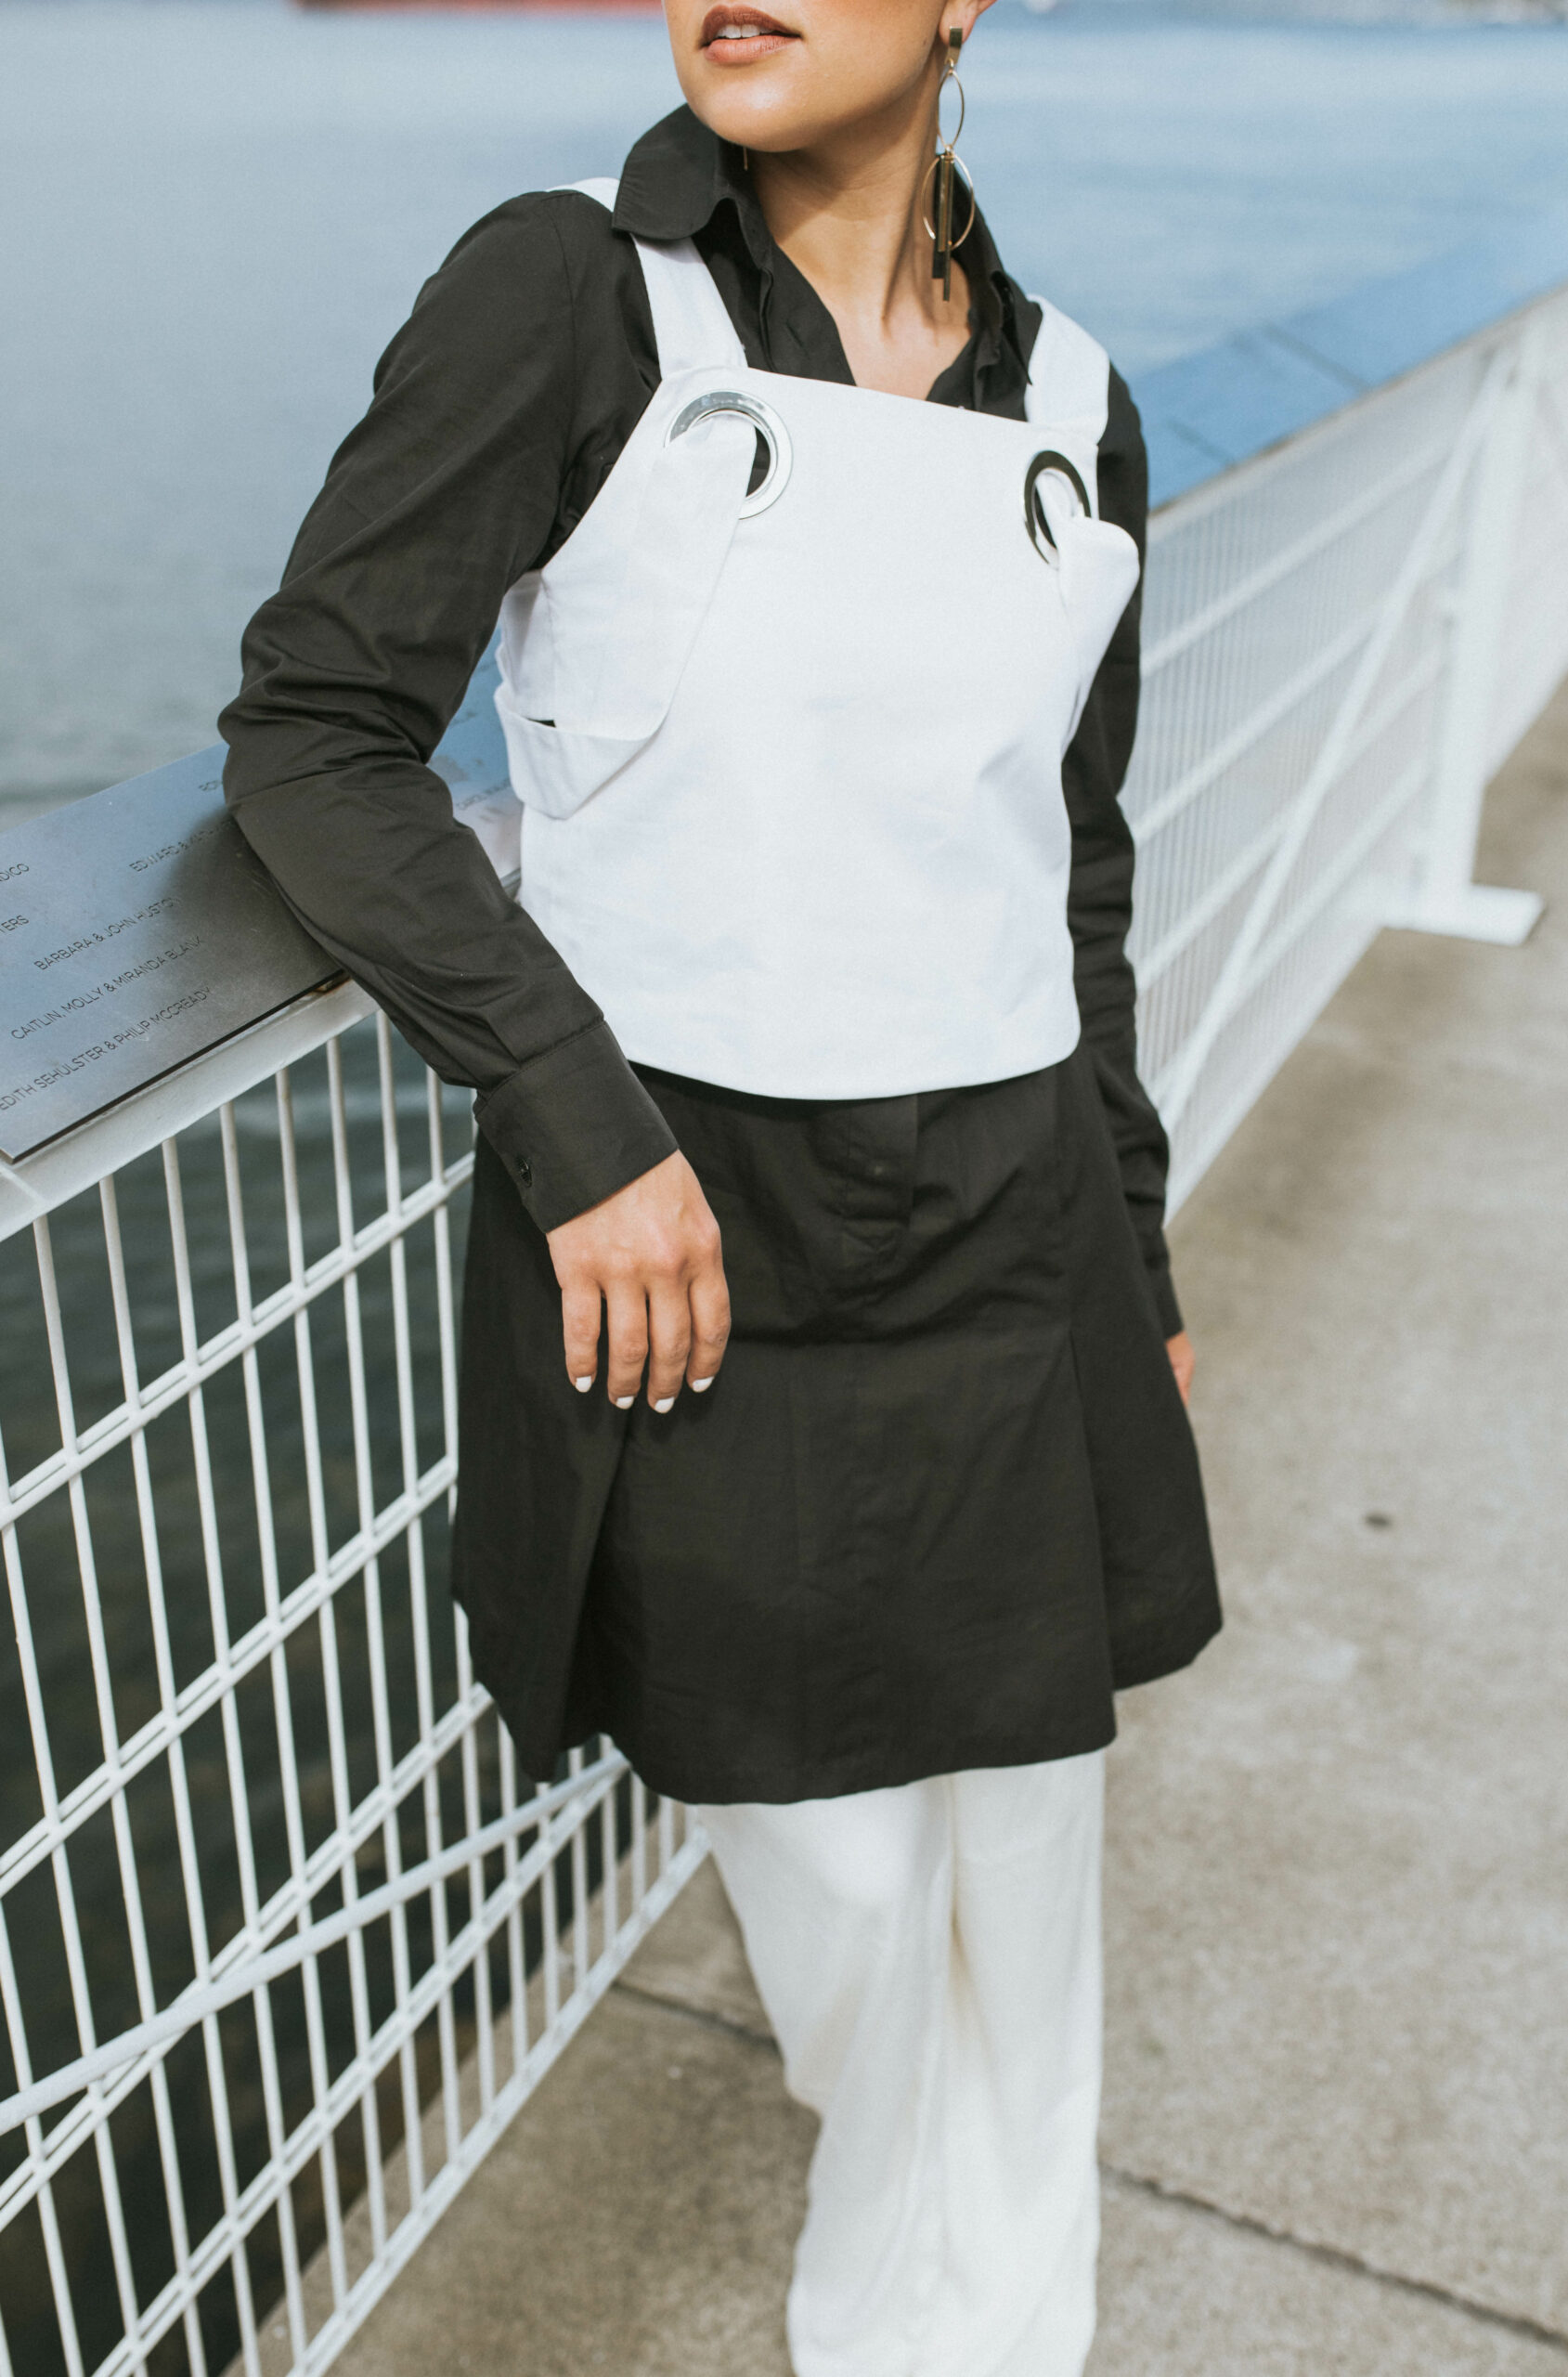 Shirt Dressing: 2 Ways to Create a Multi-Dimensional Look Starting with a Shirt Dress